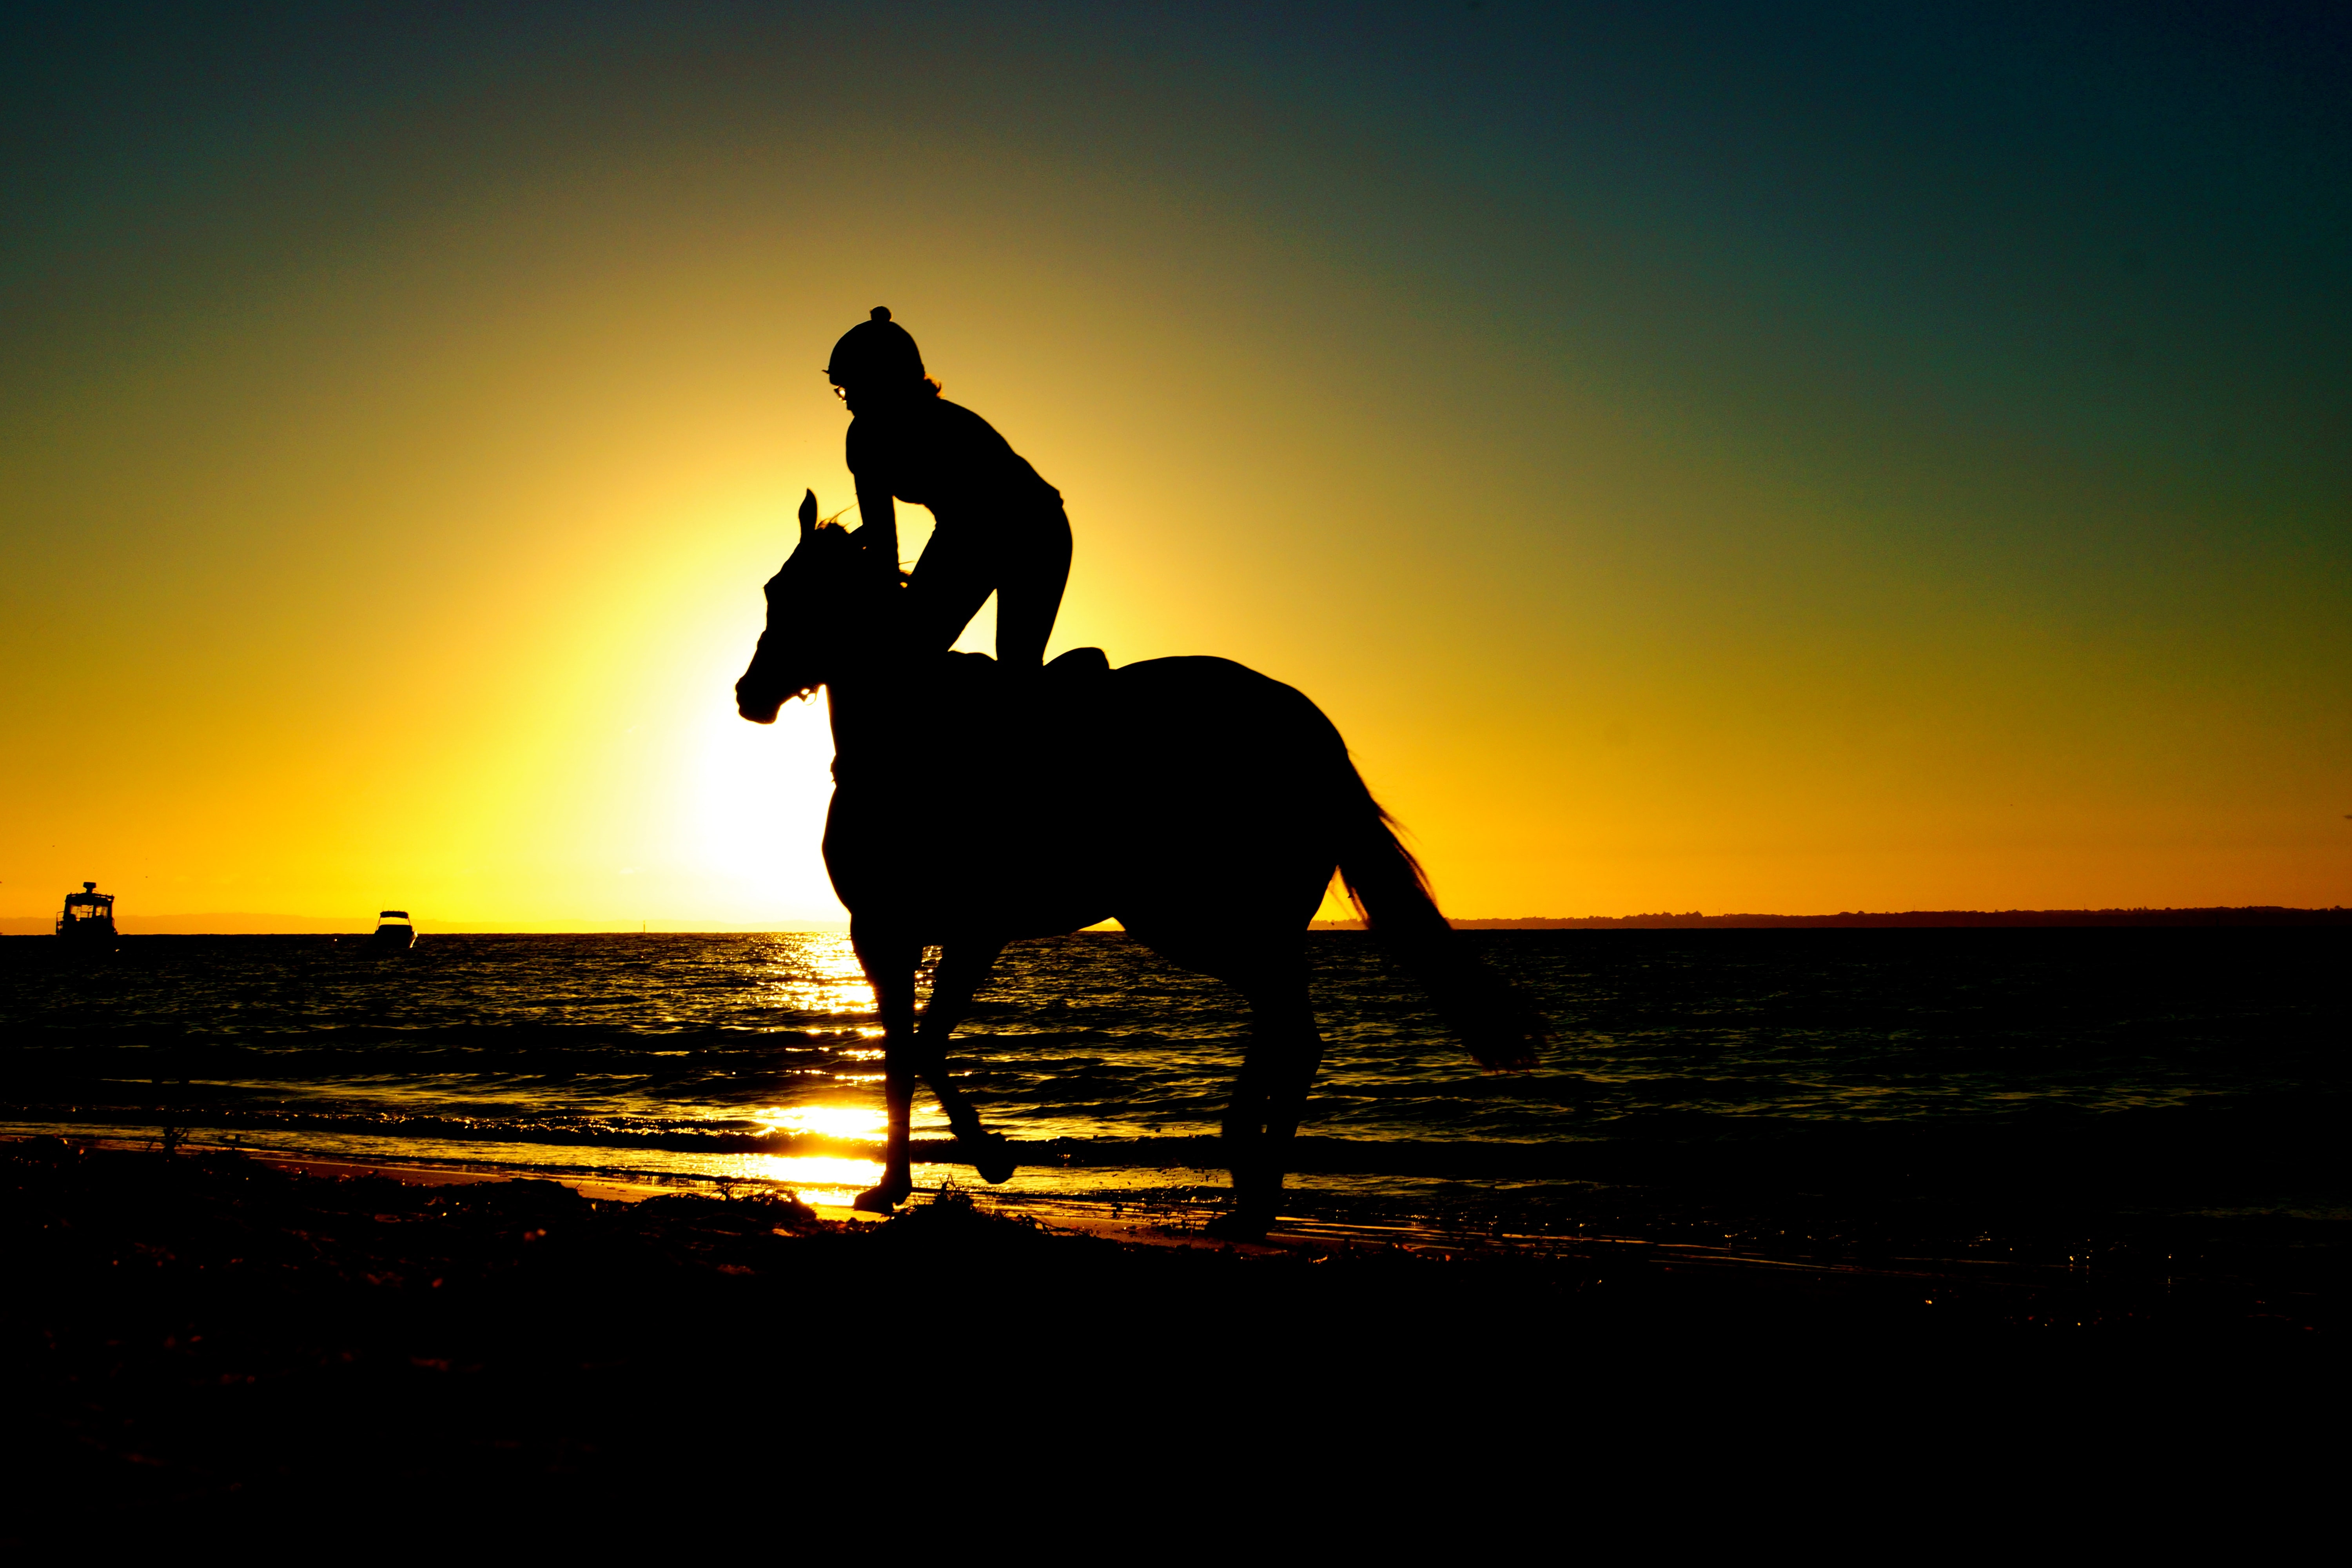 A silhouette of a person riding a horse along a beach during sunset